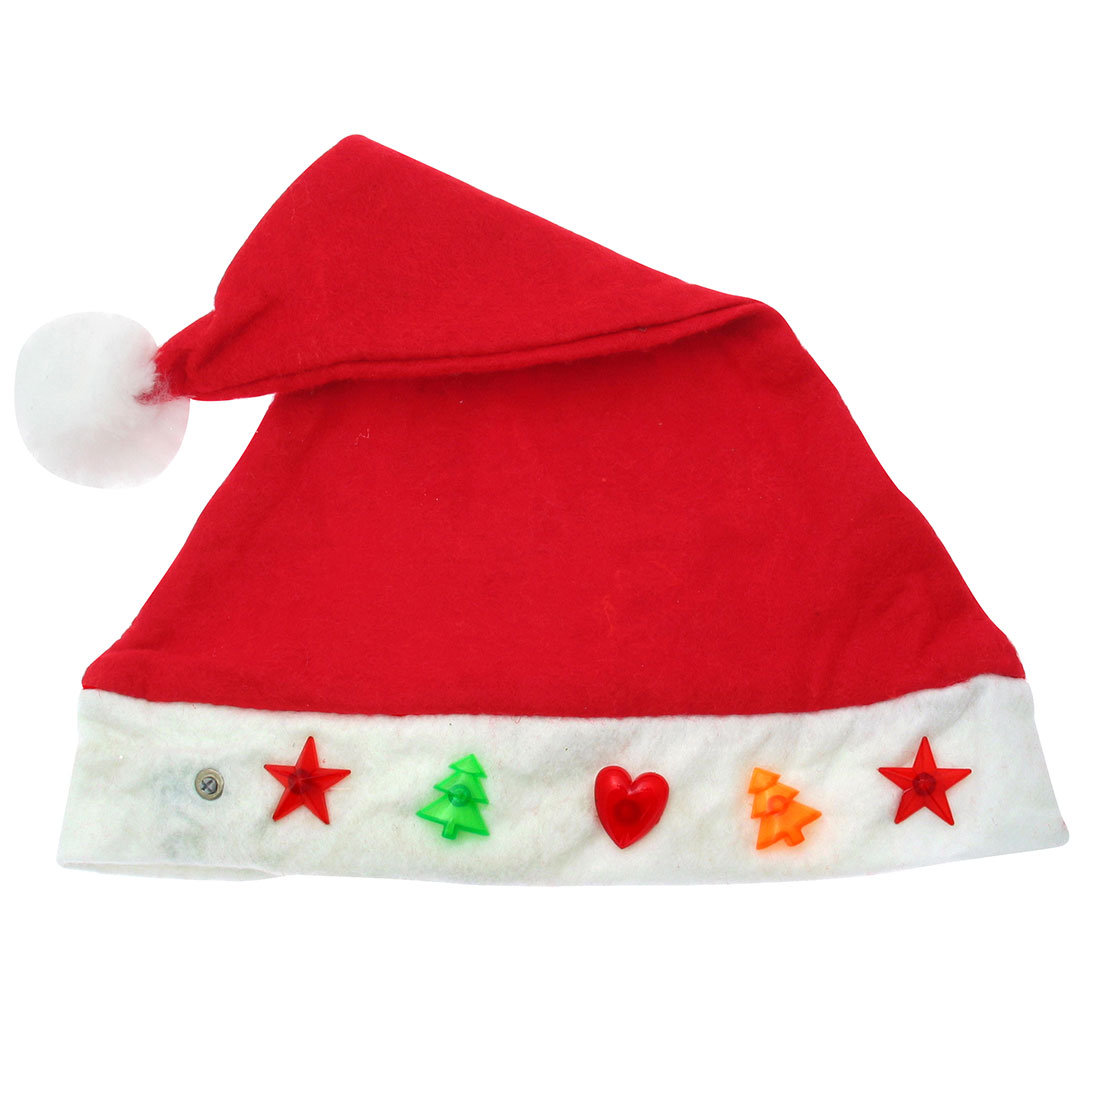 "X'mas Christmas Santa Claus Hat with Heart & Trees Flashlight 15"" - Red"